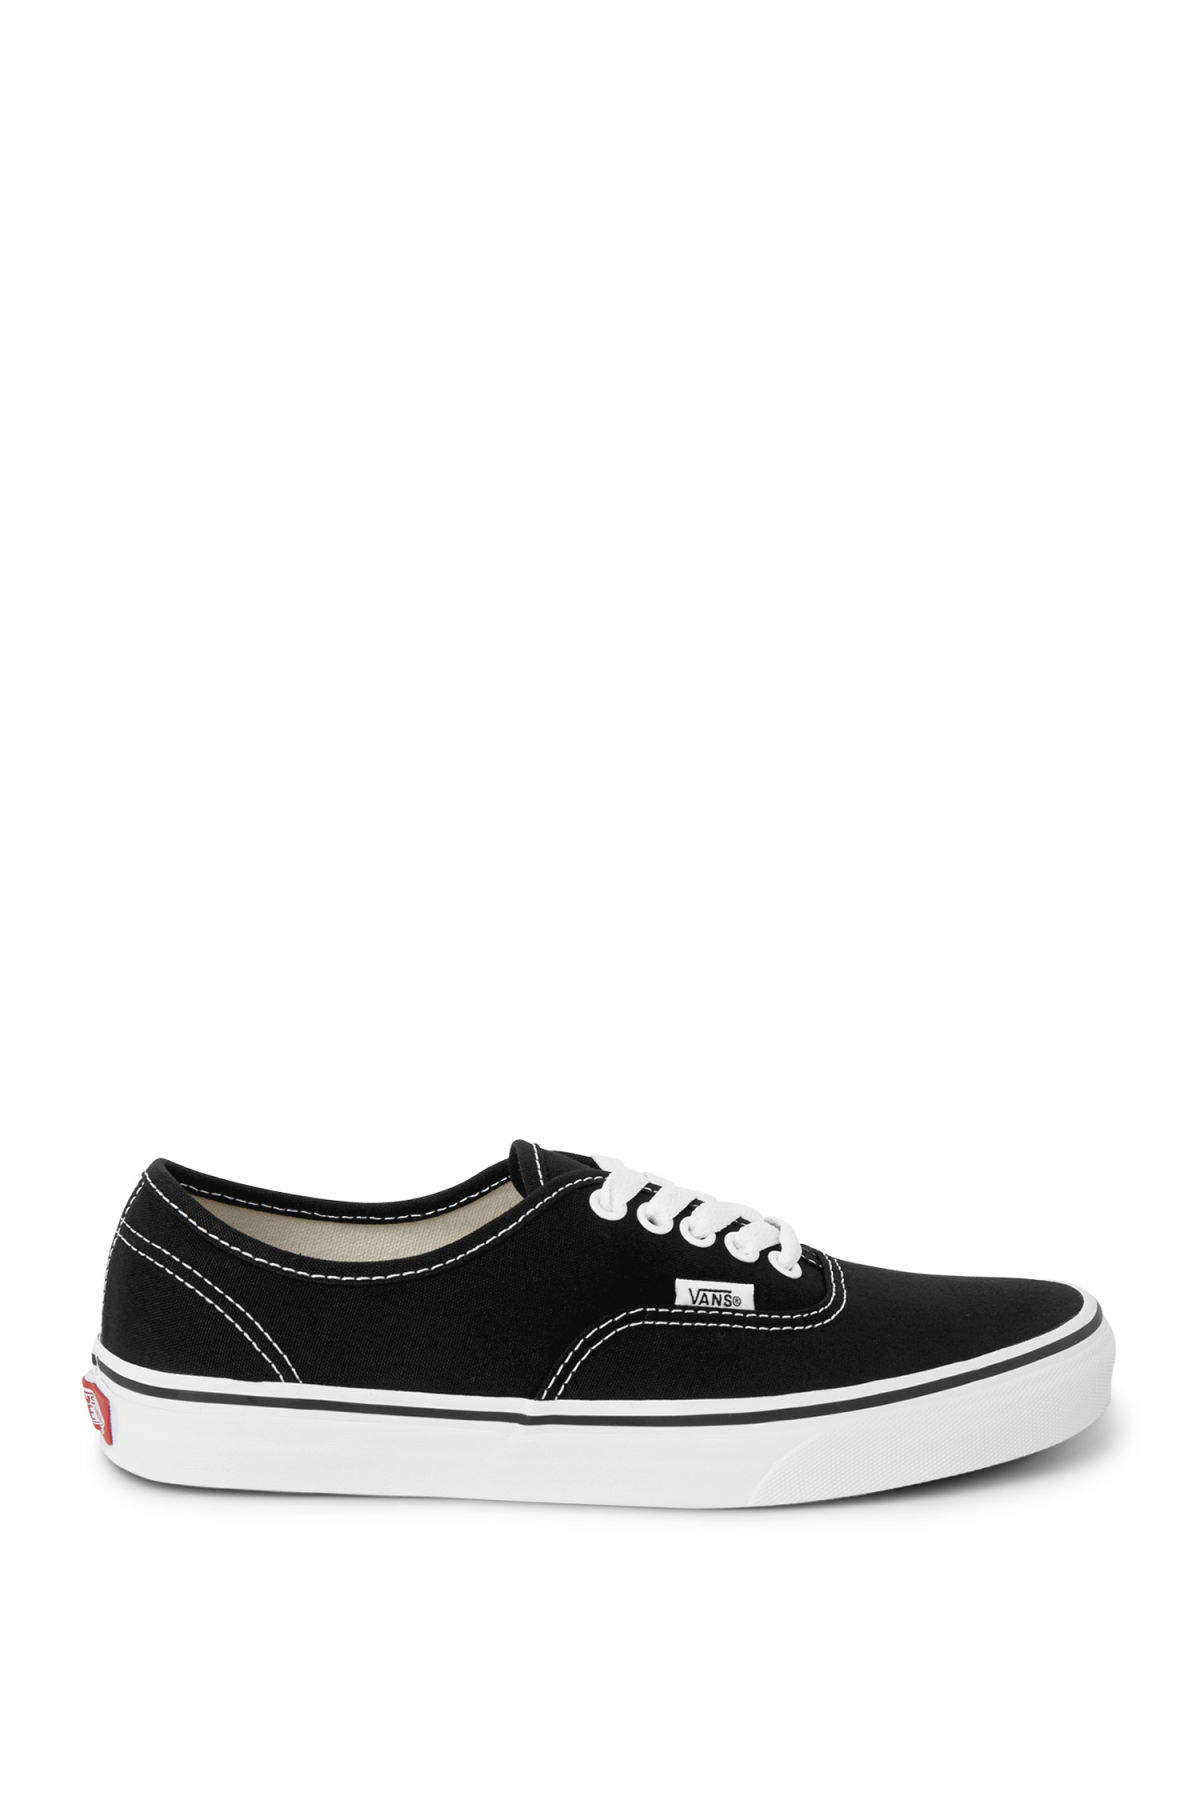 9f1f62bb78 Front image of Weekday authentic shoes in black